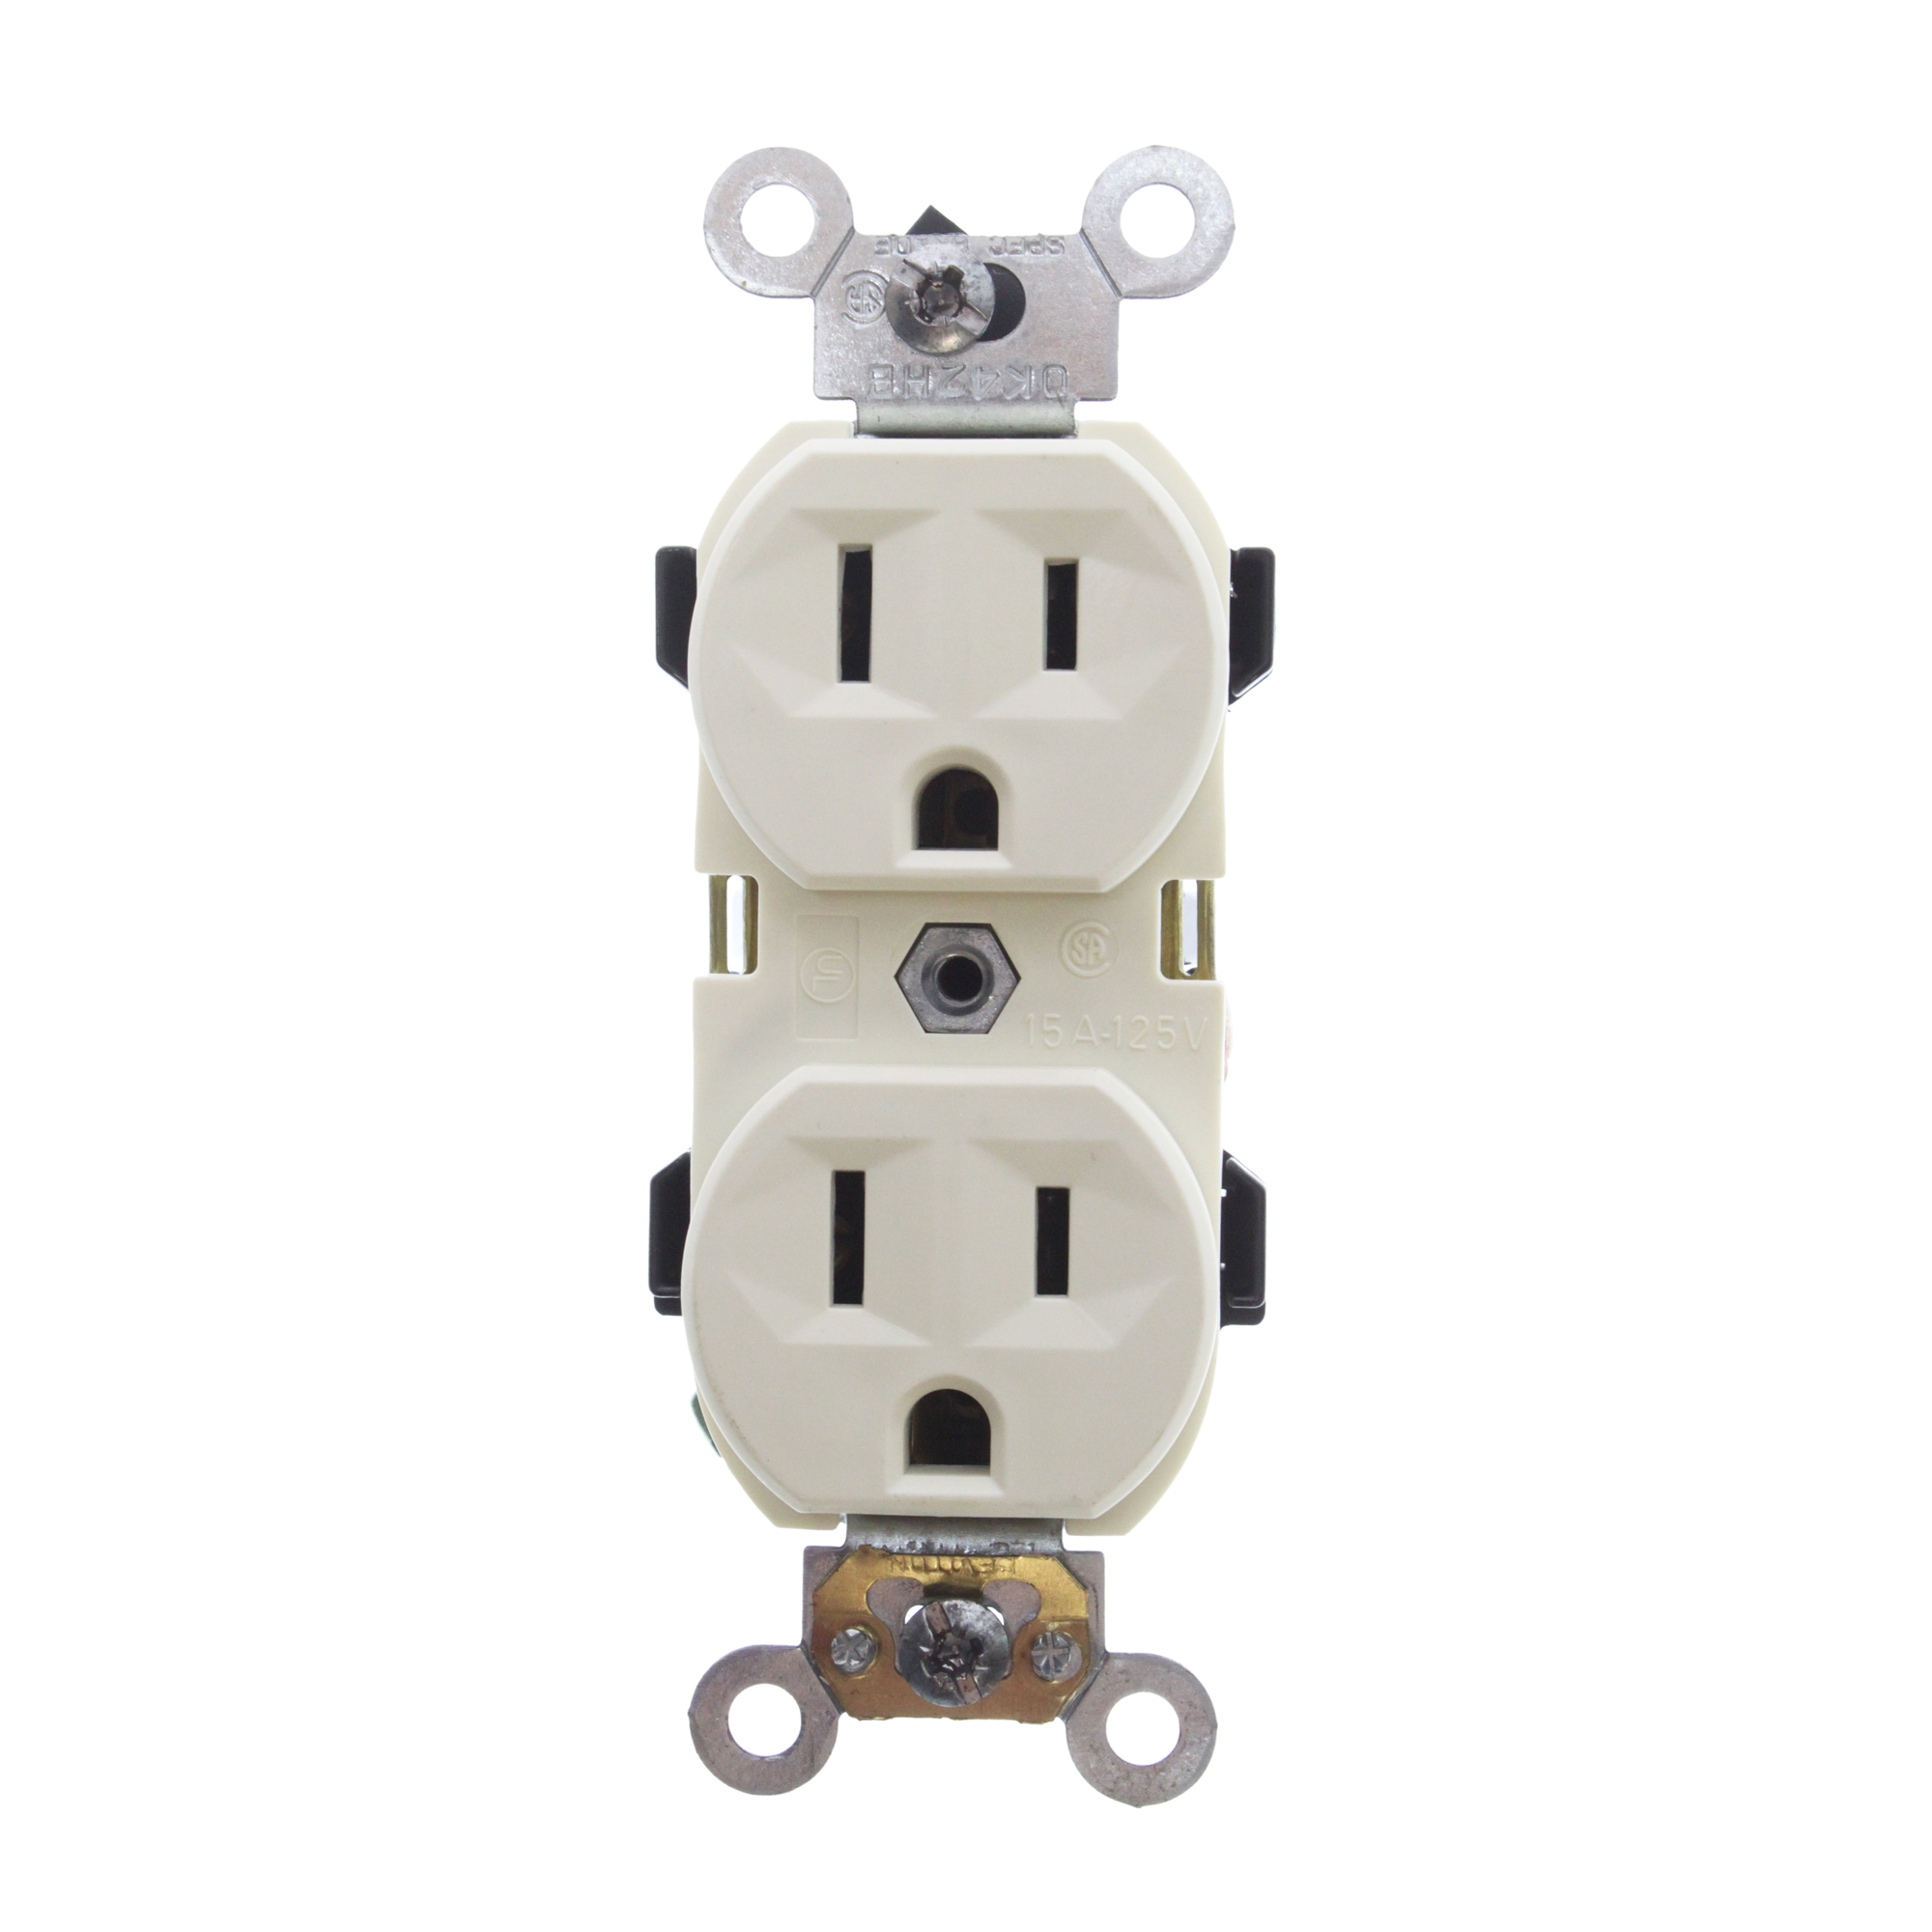 LEVITON BR15-A SELF GROUNDING DUPLEX RECEPTACLE, 15A 125V, 2P, 3W ...